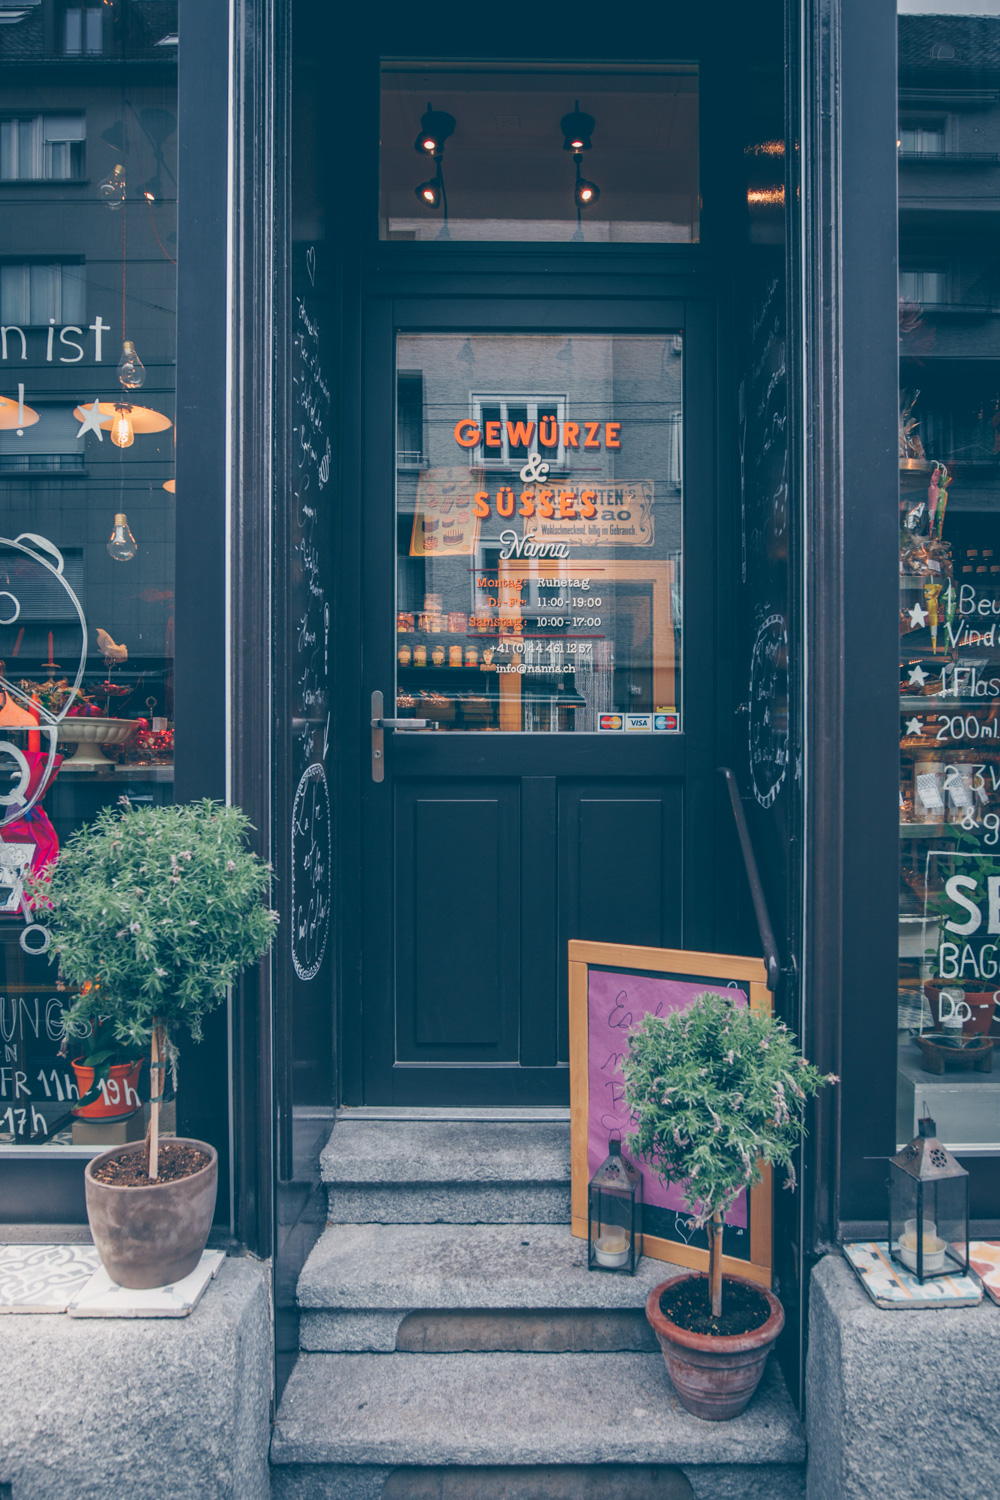 A Quick Food Guide to Zürich, Switzerland by Kati black.white.vivid. - Spice Shop Nanna Bunte Küche